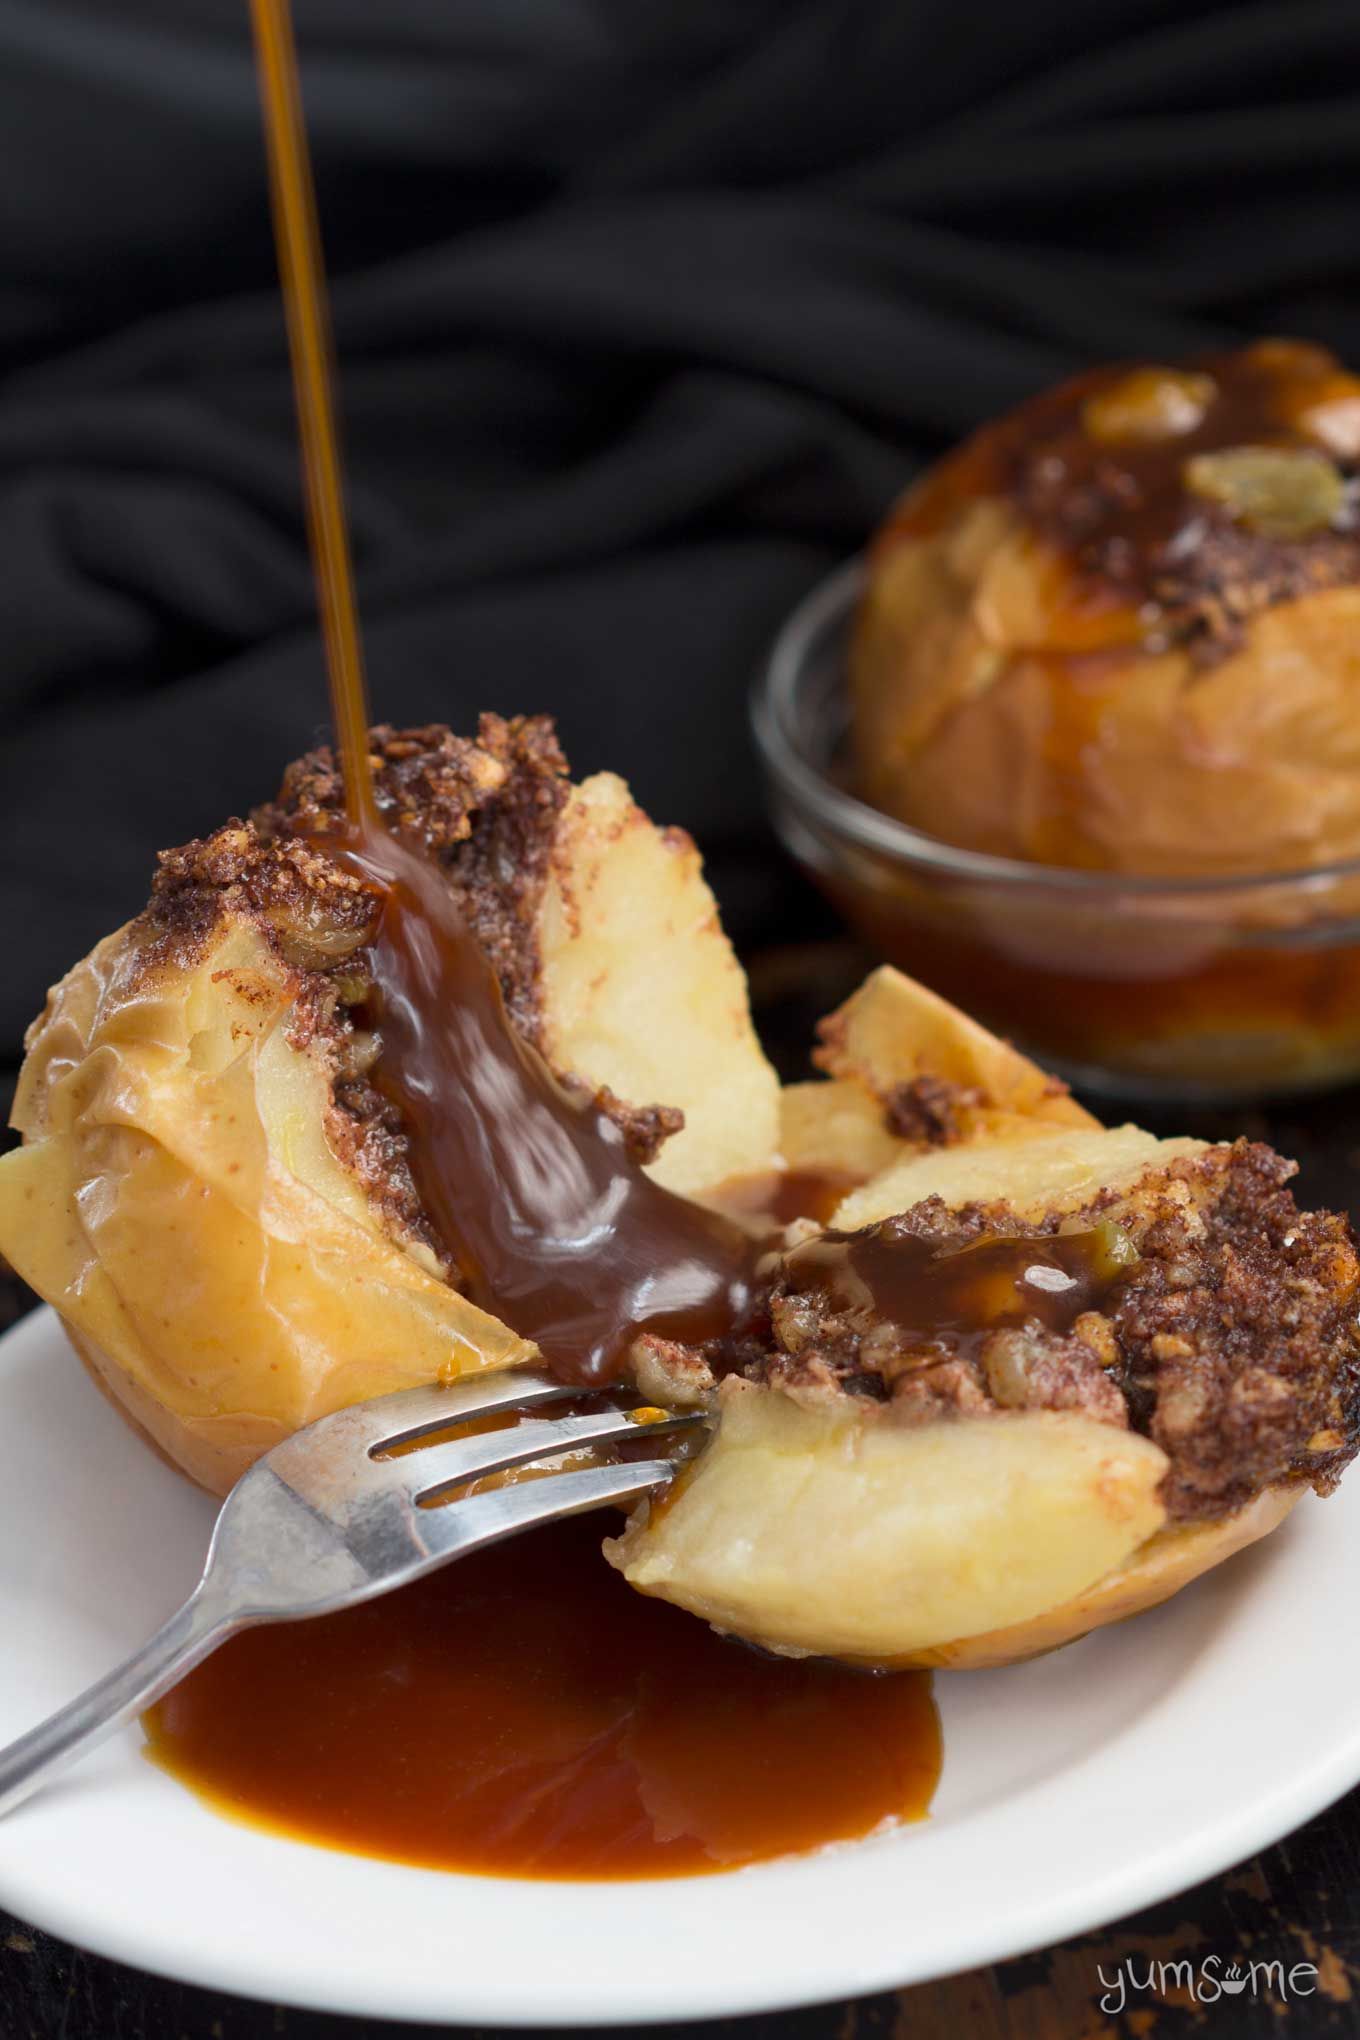 caramel drizzled baked apples drizzled with miso caramel sauce | yumsome.com